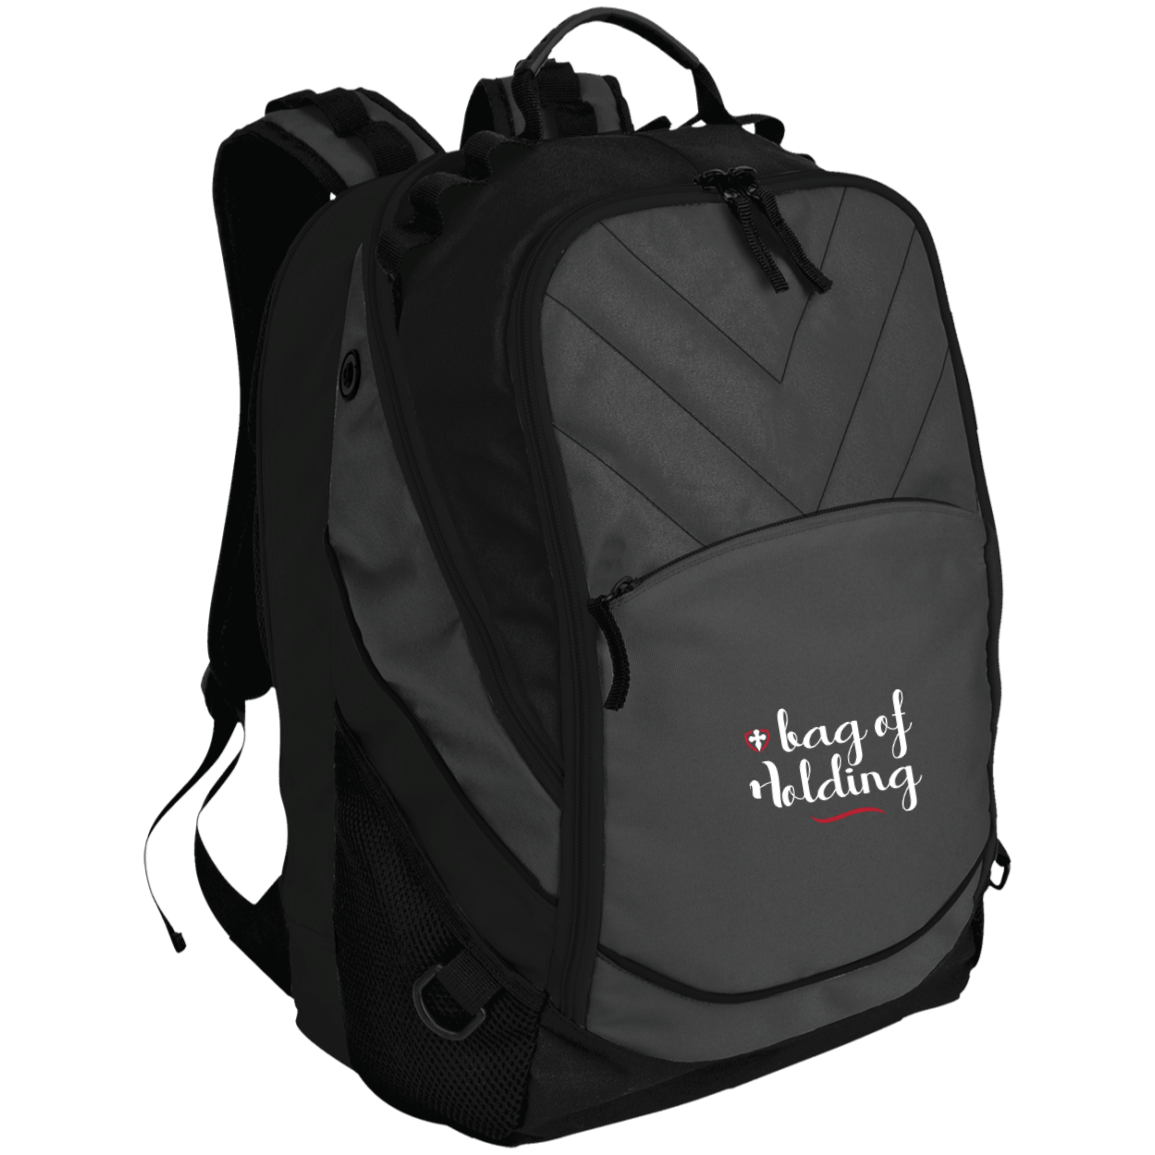 Laptop and Roleplaying Gear Rucksack - 'Bag Of Holding'